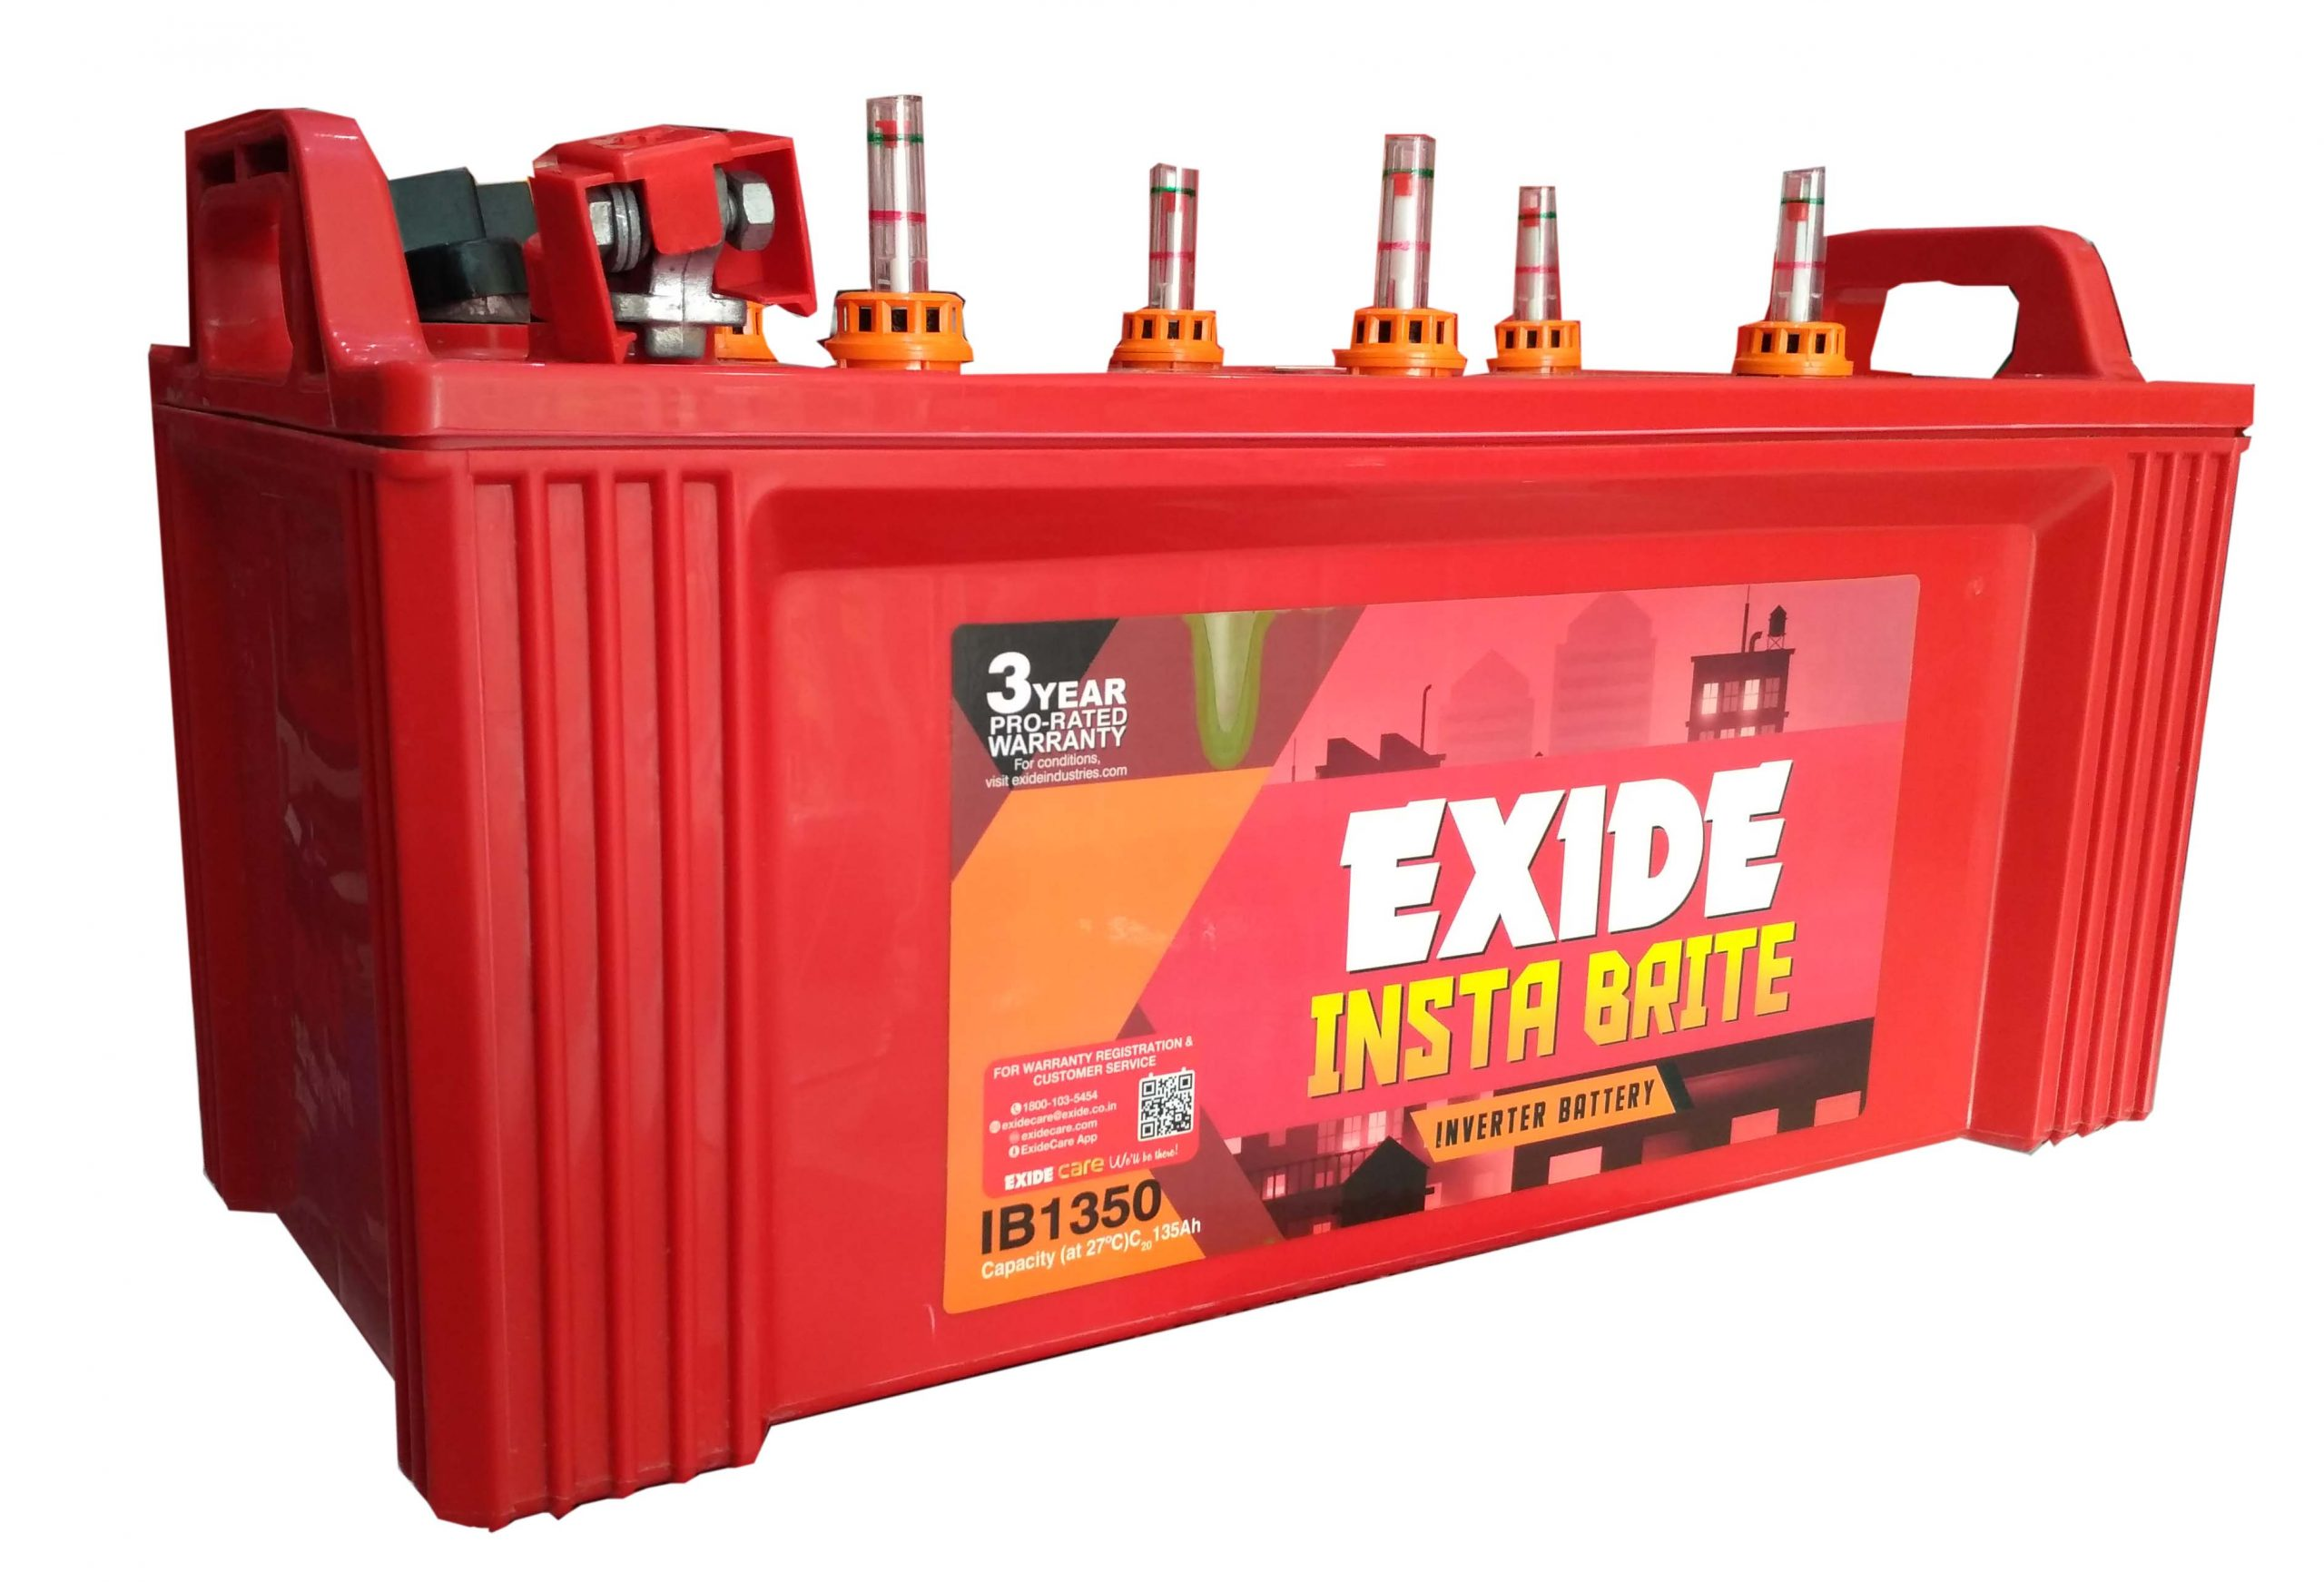 Exide Battery Price in Pakistan 2021